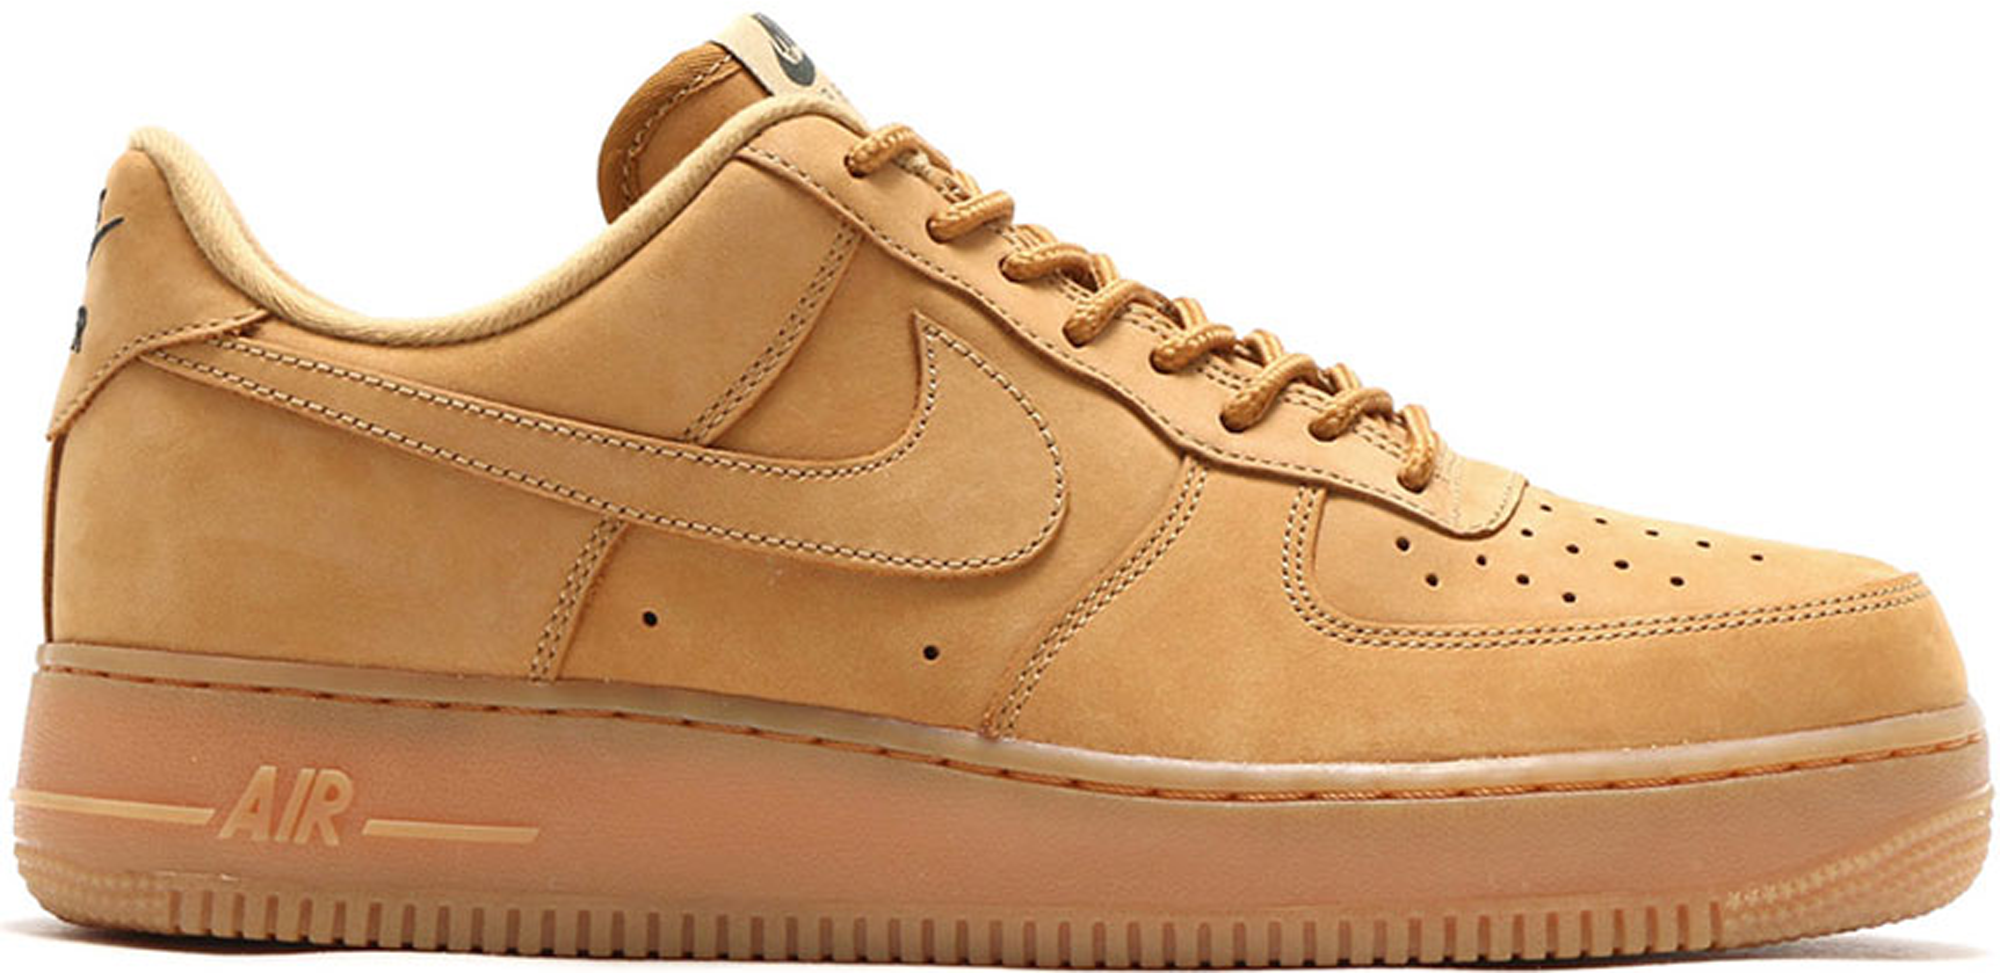 Air Force 1 Low Flax (2018)